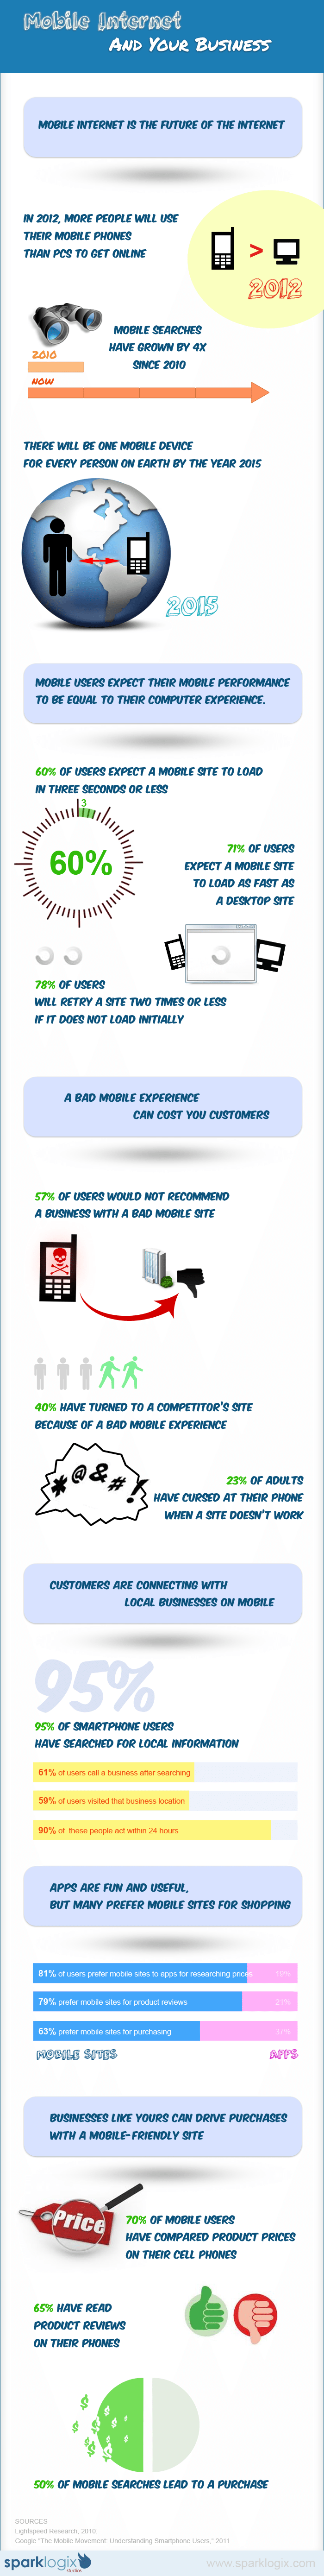 Mobile Internet Infographic